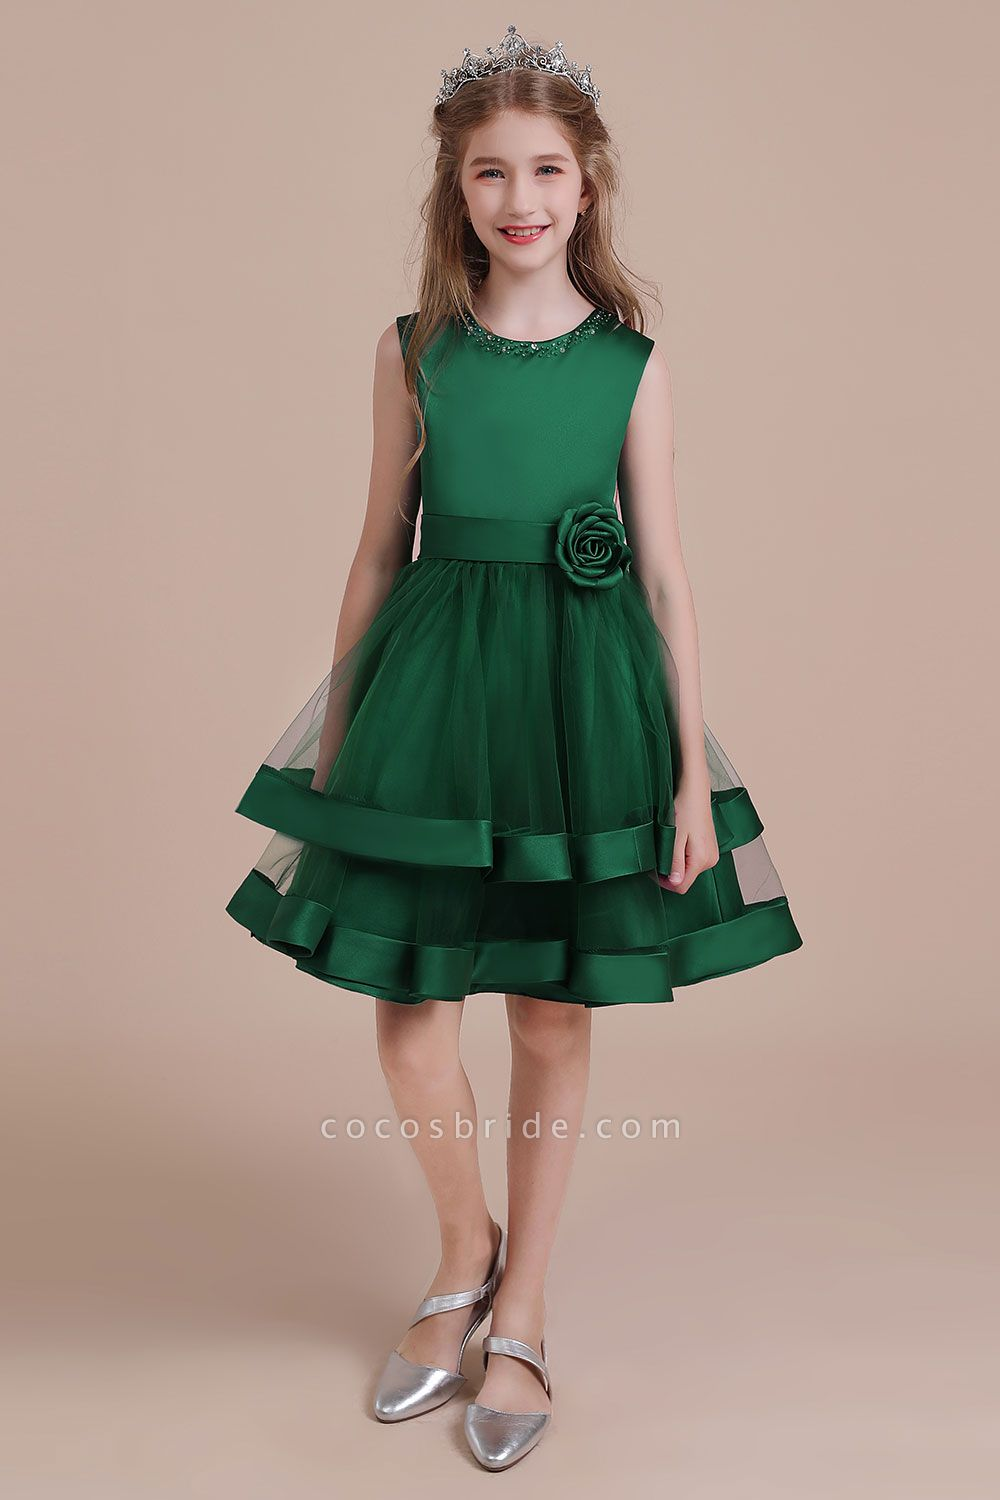 Bow A-line Satin Layered Tulle Flower Girl Dress